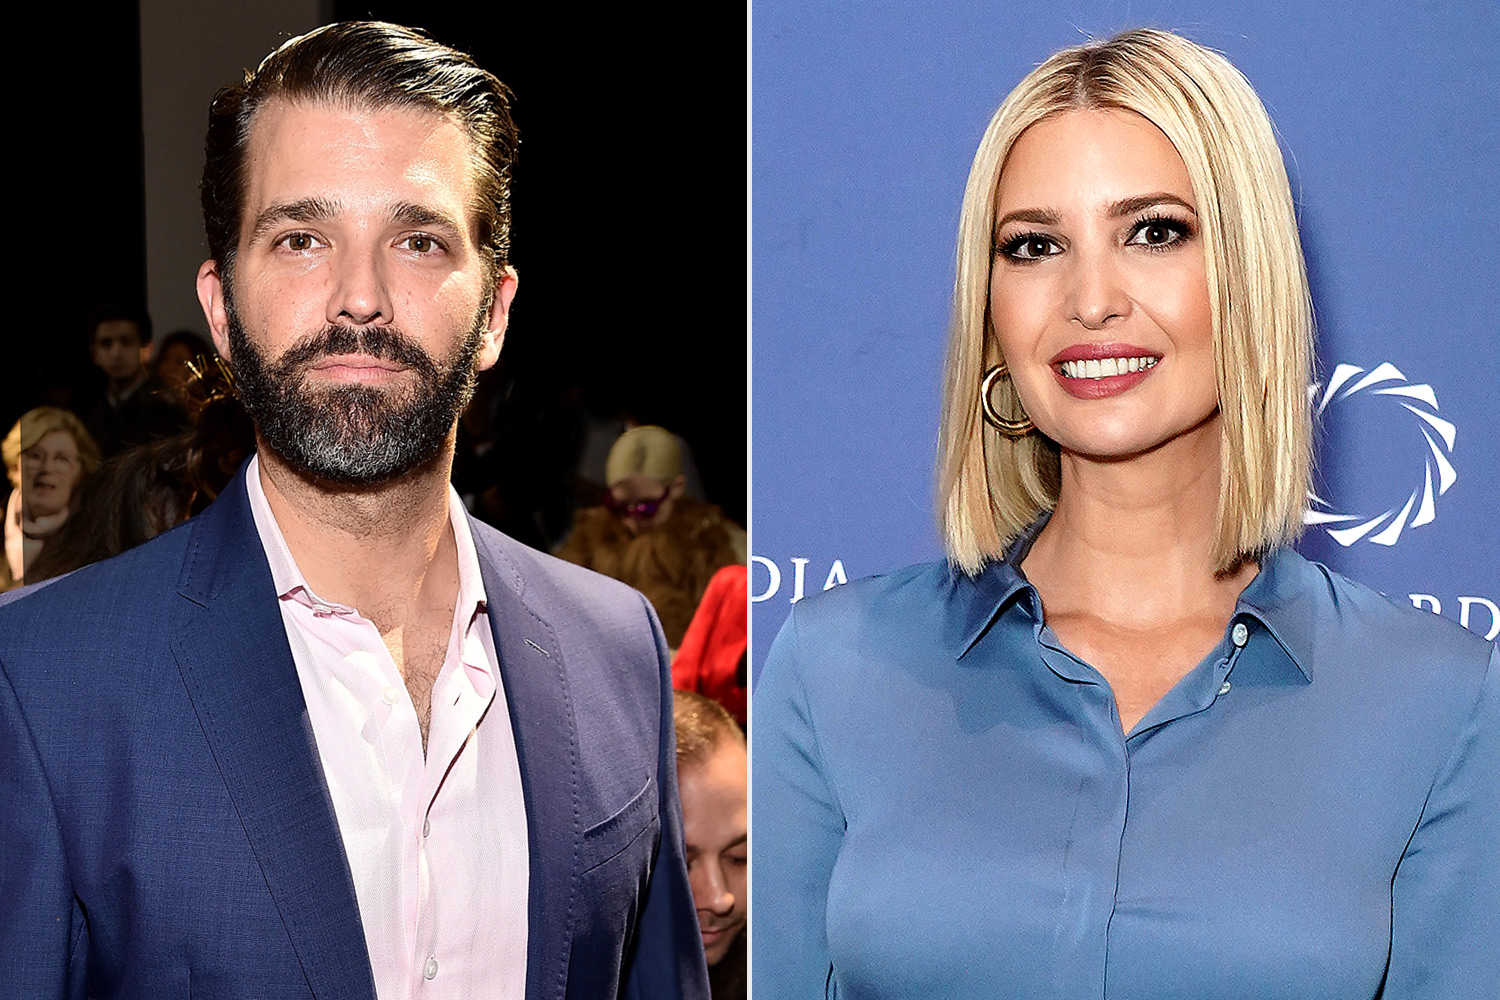 Donald Trump Jr. and Ivanka Trump